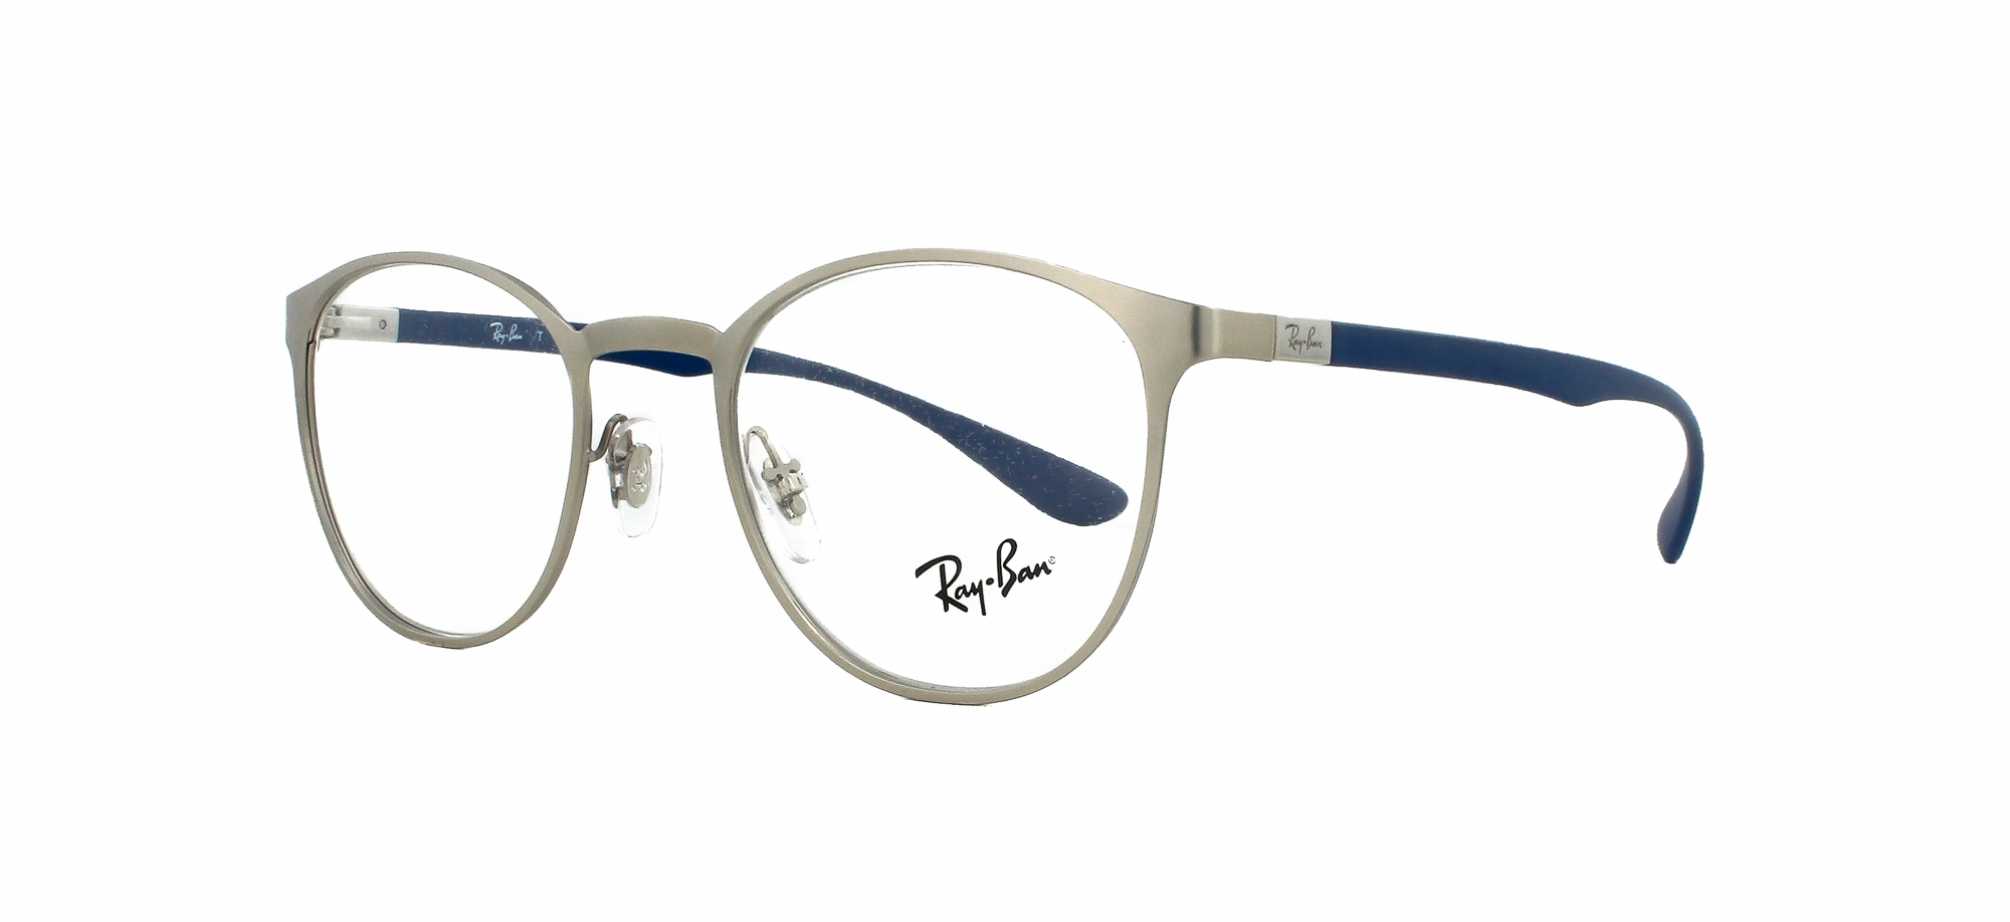 4a32ea5843 Ray Ban Frames Only 2017 « One More Soul